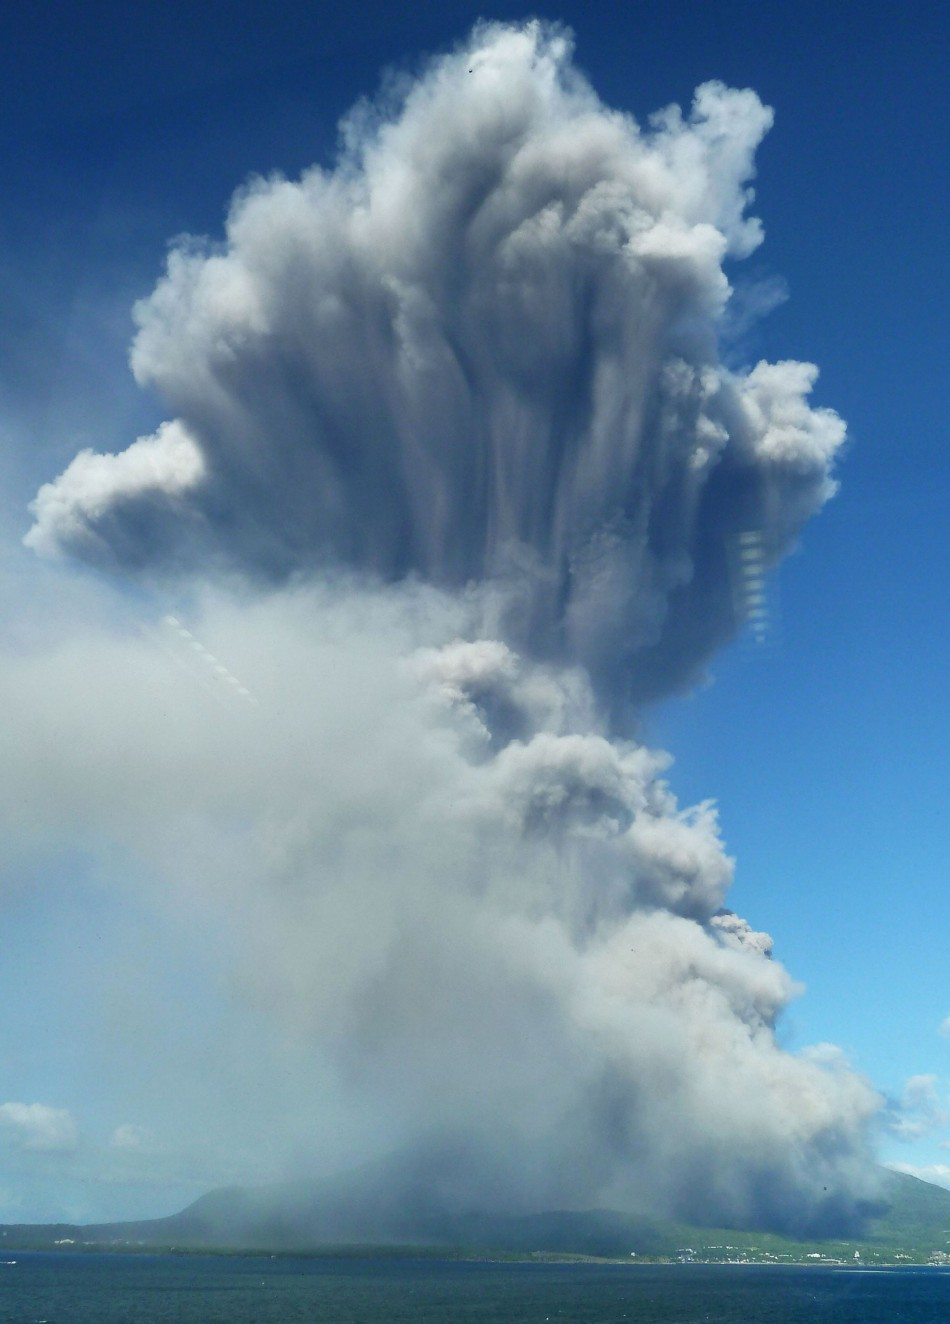 Smoke rises after an eruption of Mount Sakurajima in Kagoshima, southwestern Japan, in this photo taken through a window by Kyodo August 18, 2013. The eruption on Sunday of the 1,117-metre (3665-feet) high volcano, one of Japan's most active volcanoes, se